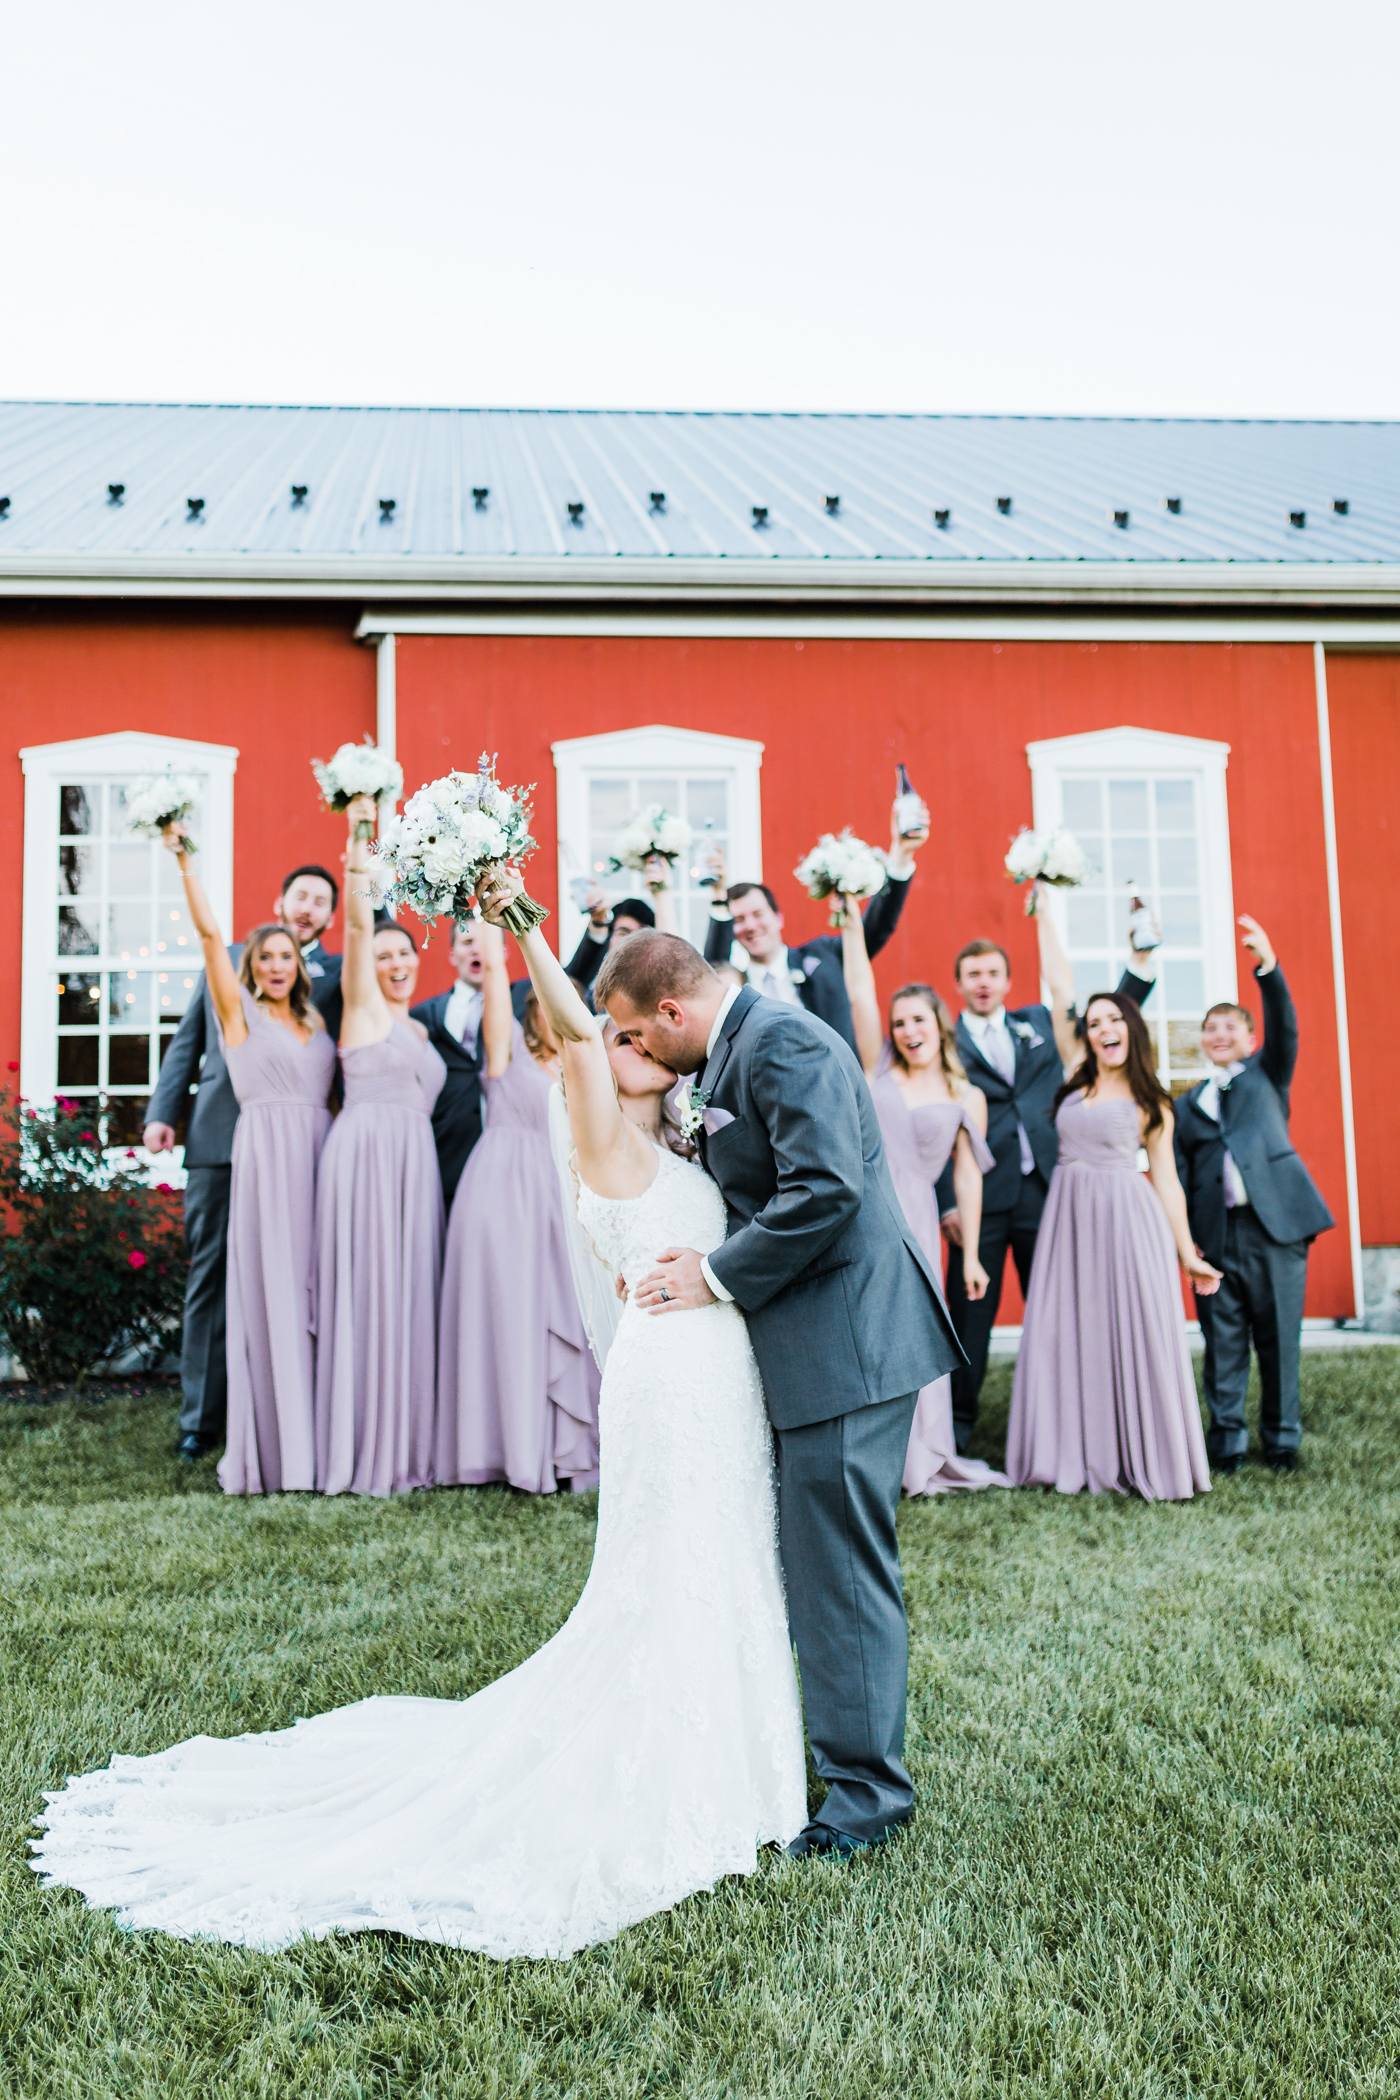 Wedding party cheers as bride and groom kiss - rustic wedding venue in Maryland